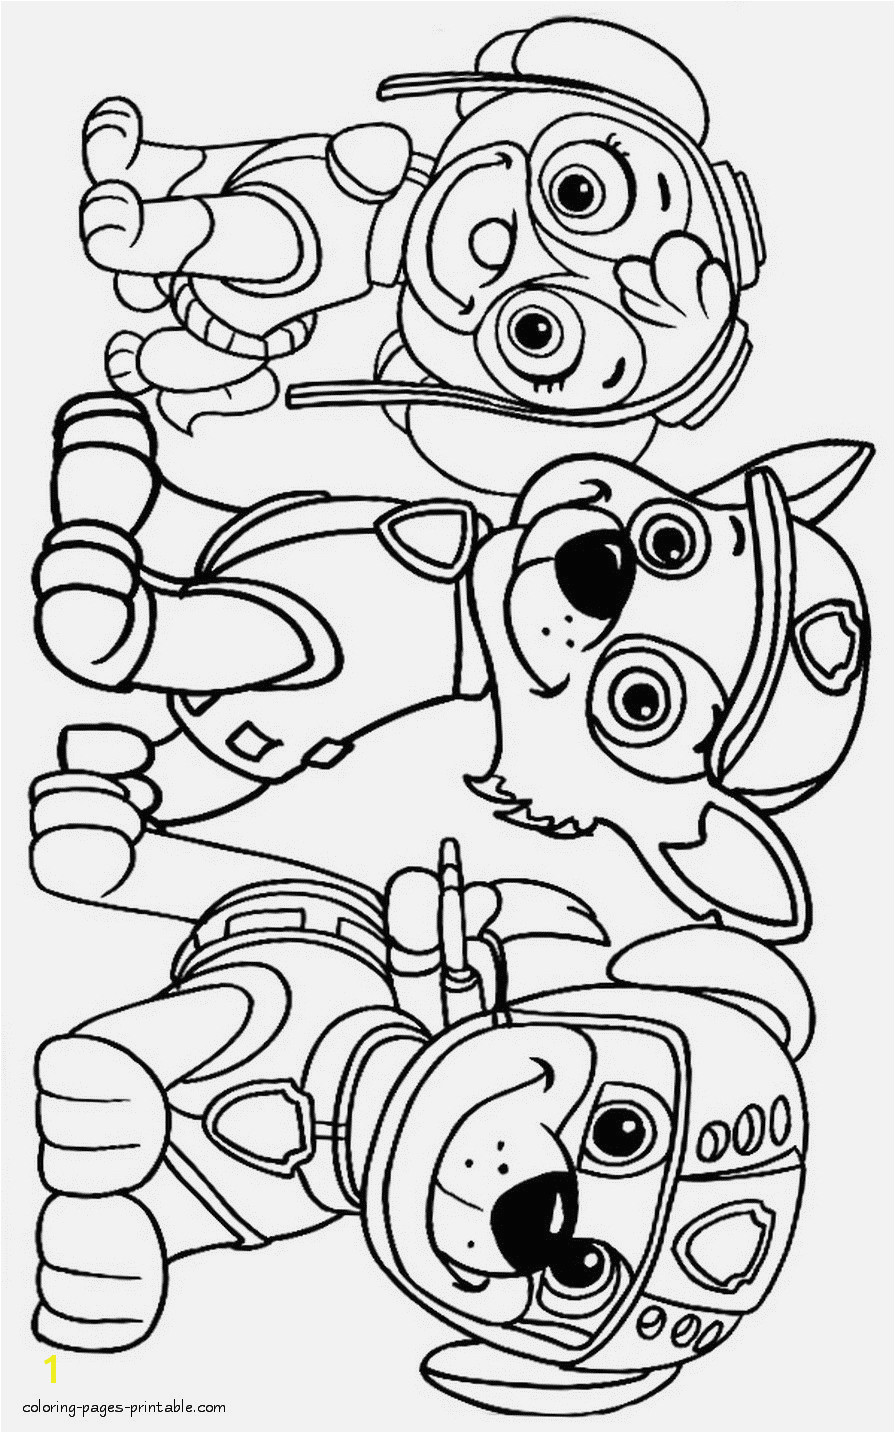 Free Coloring Pages for Kids Printable Real Puppy Coloring Pages Fresh Printable Od Dog Coloring Pages